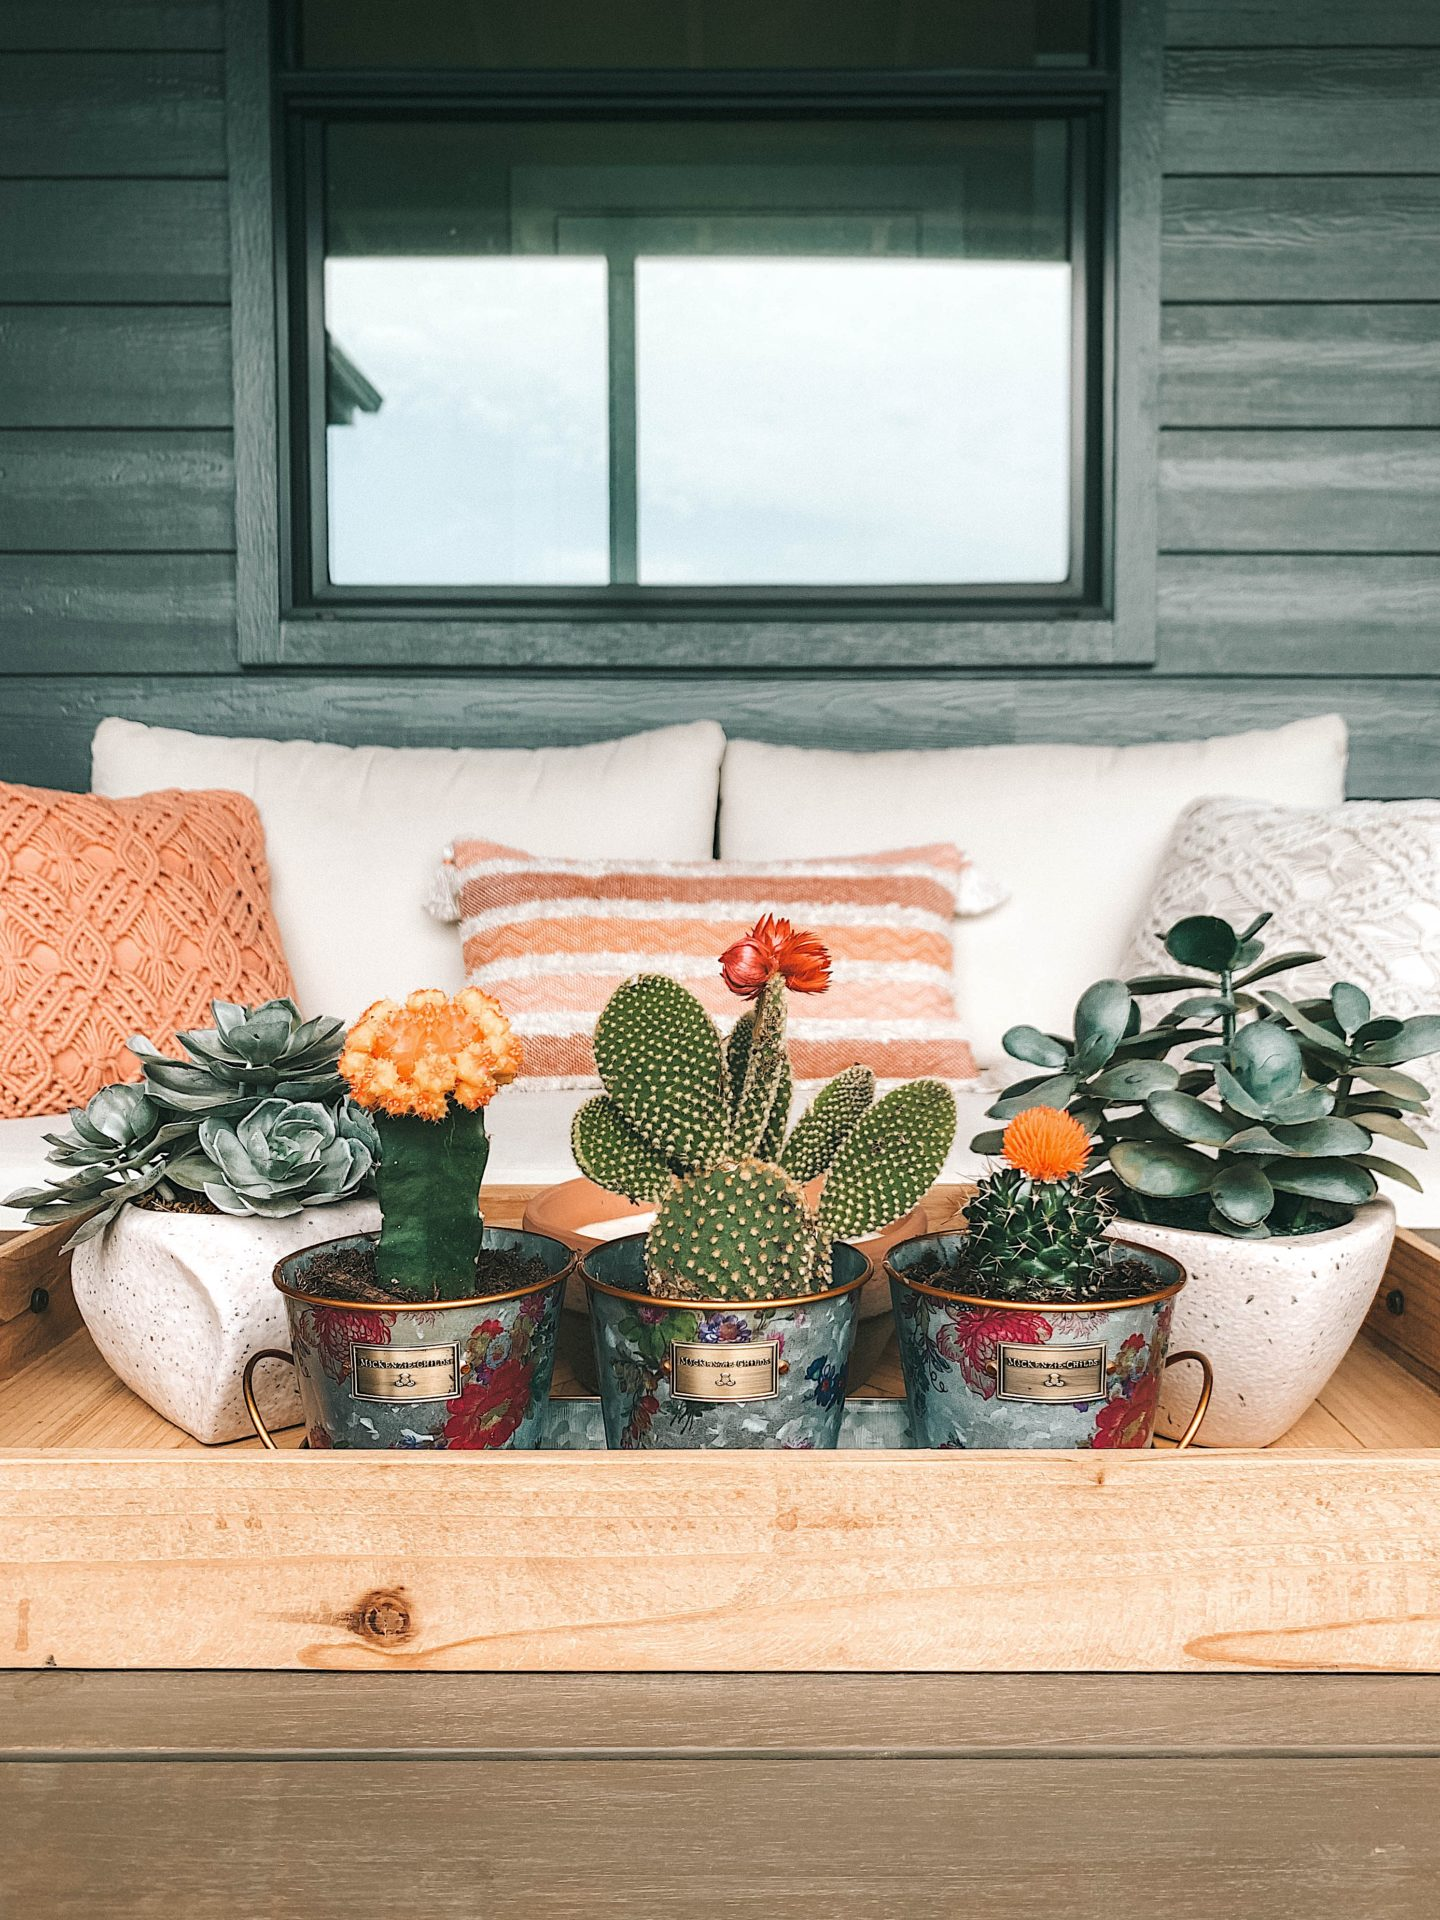 Mackenzie Childs Sale by popular Austin life and style blog, Dressed to Kill: image of various cacti plants in a Mackenzie Child planter pots.